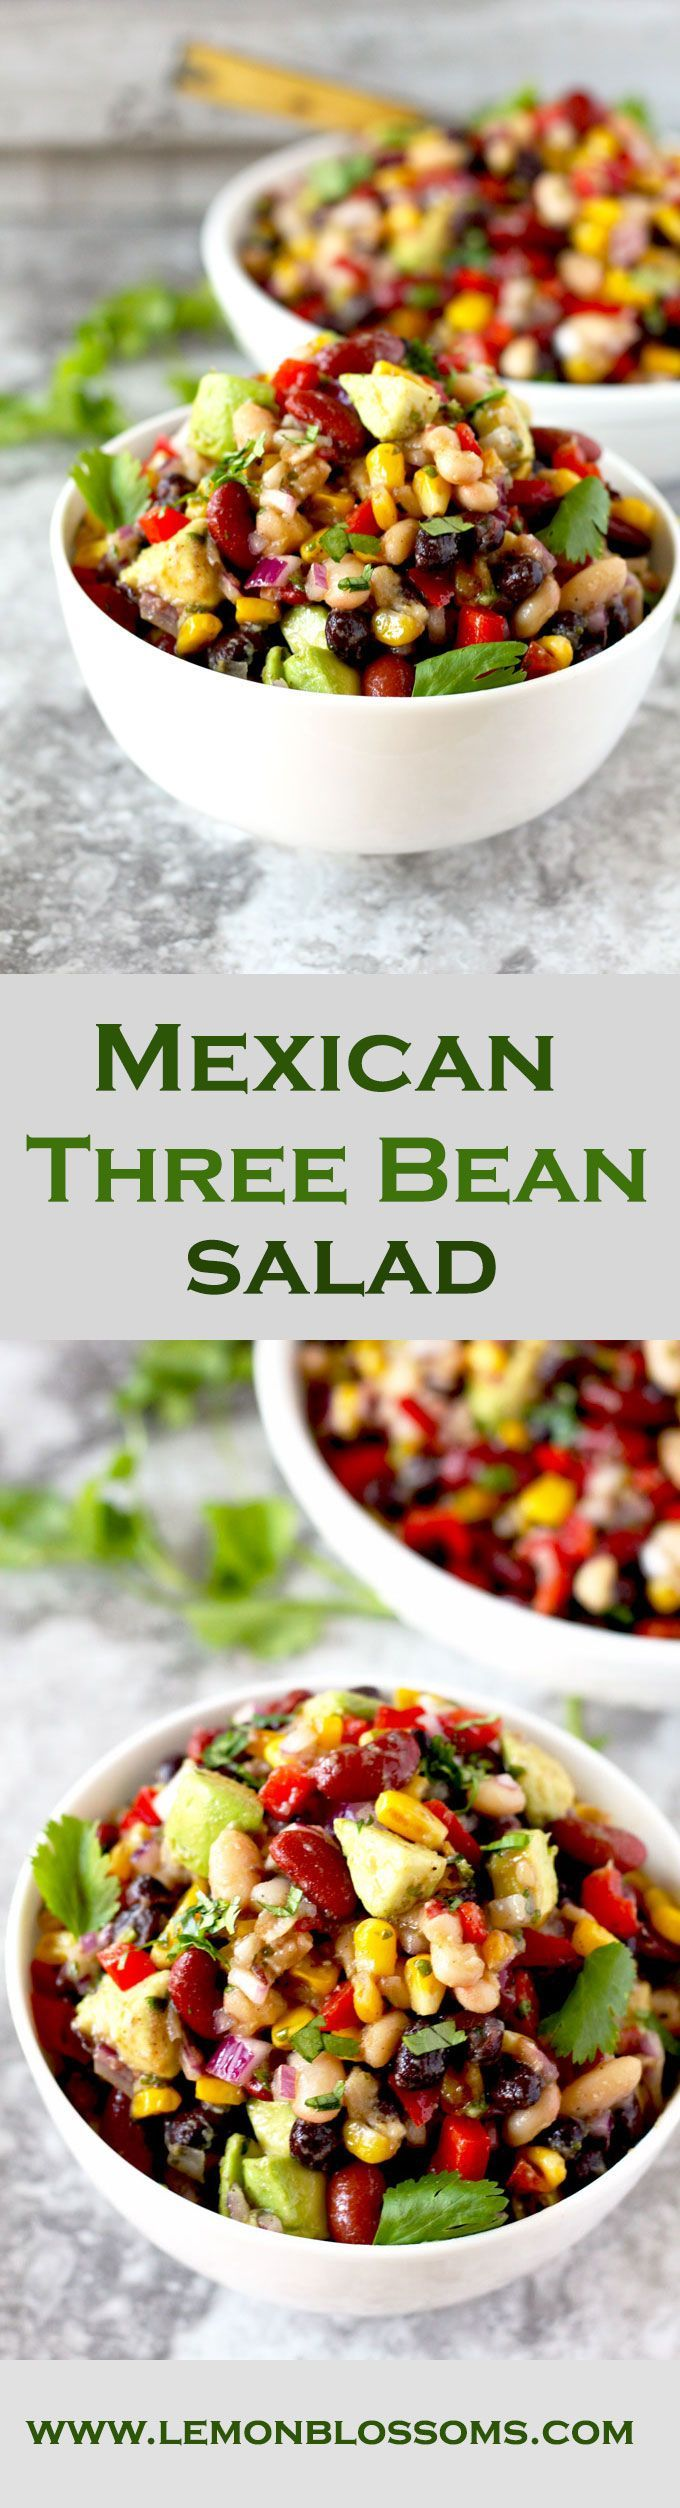 This protein-rich Mexican Three Bean Salad is loaded with southwestern flavors. Quick, easy and the perfect make-ahead dish to serve when you have company, at parties or potlucks. #salad #threebeansalad #beans #Mexicanfood #BBQ #potlucks via @https://www.pinterest.com/lmnblossoms/